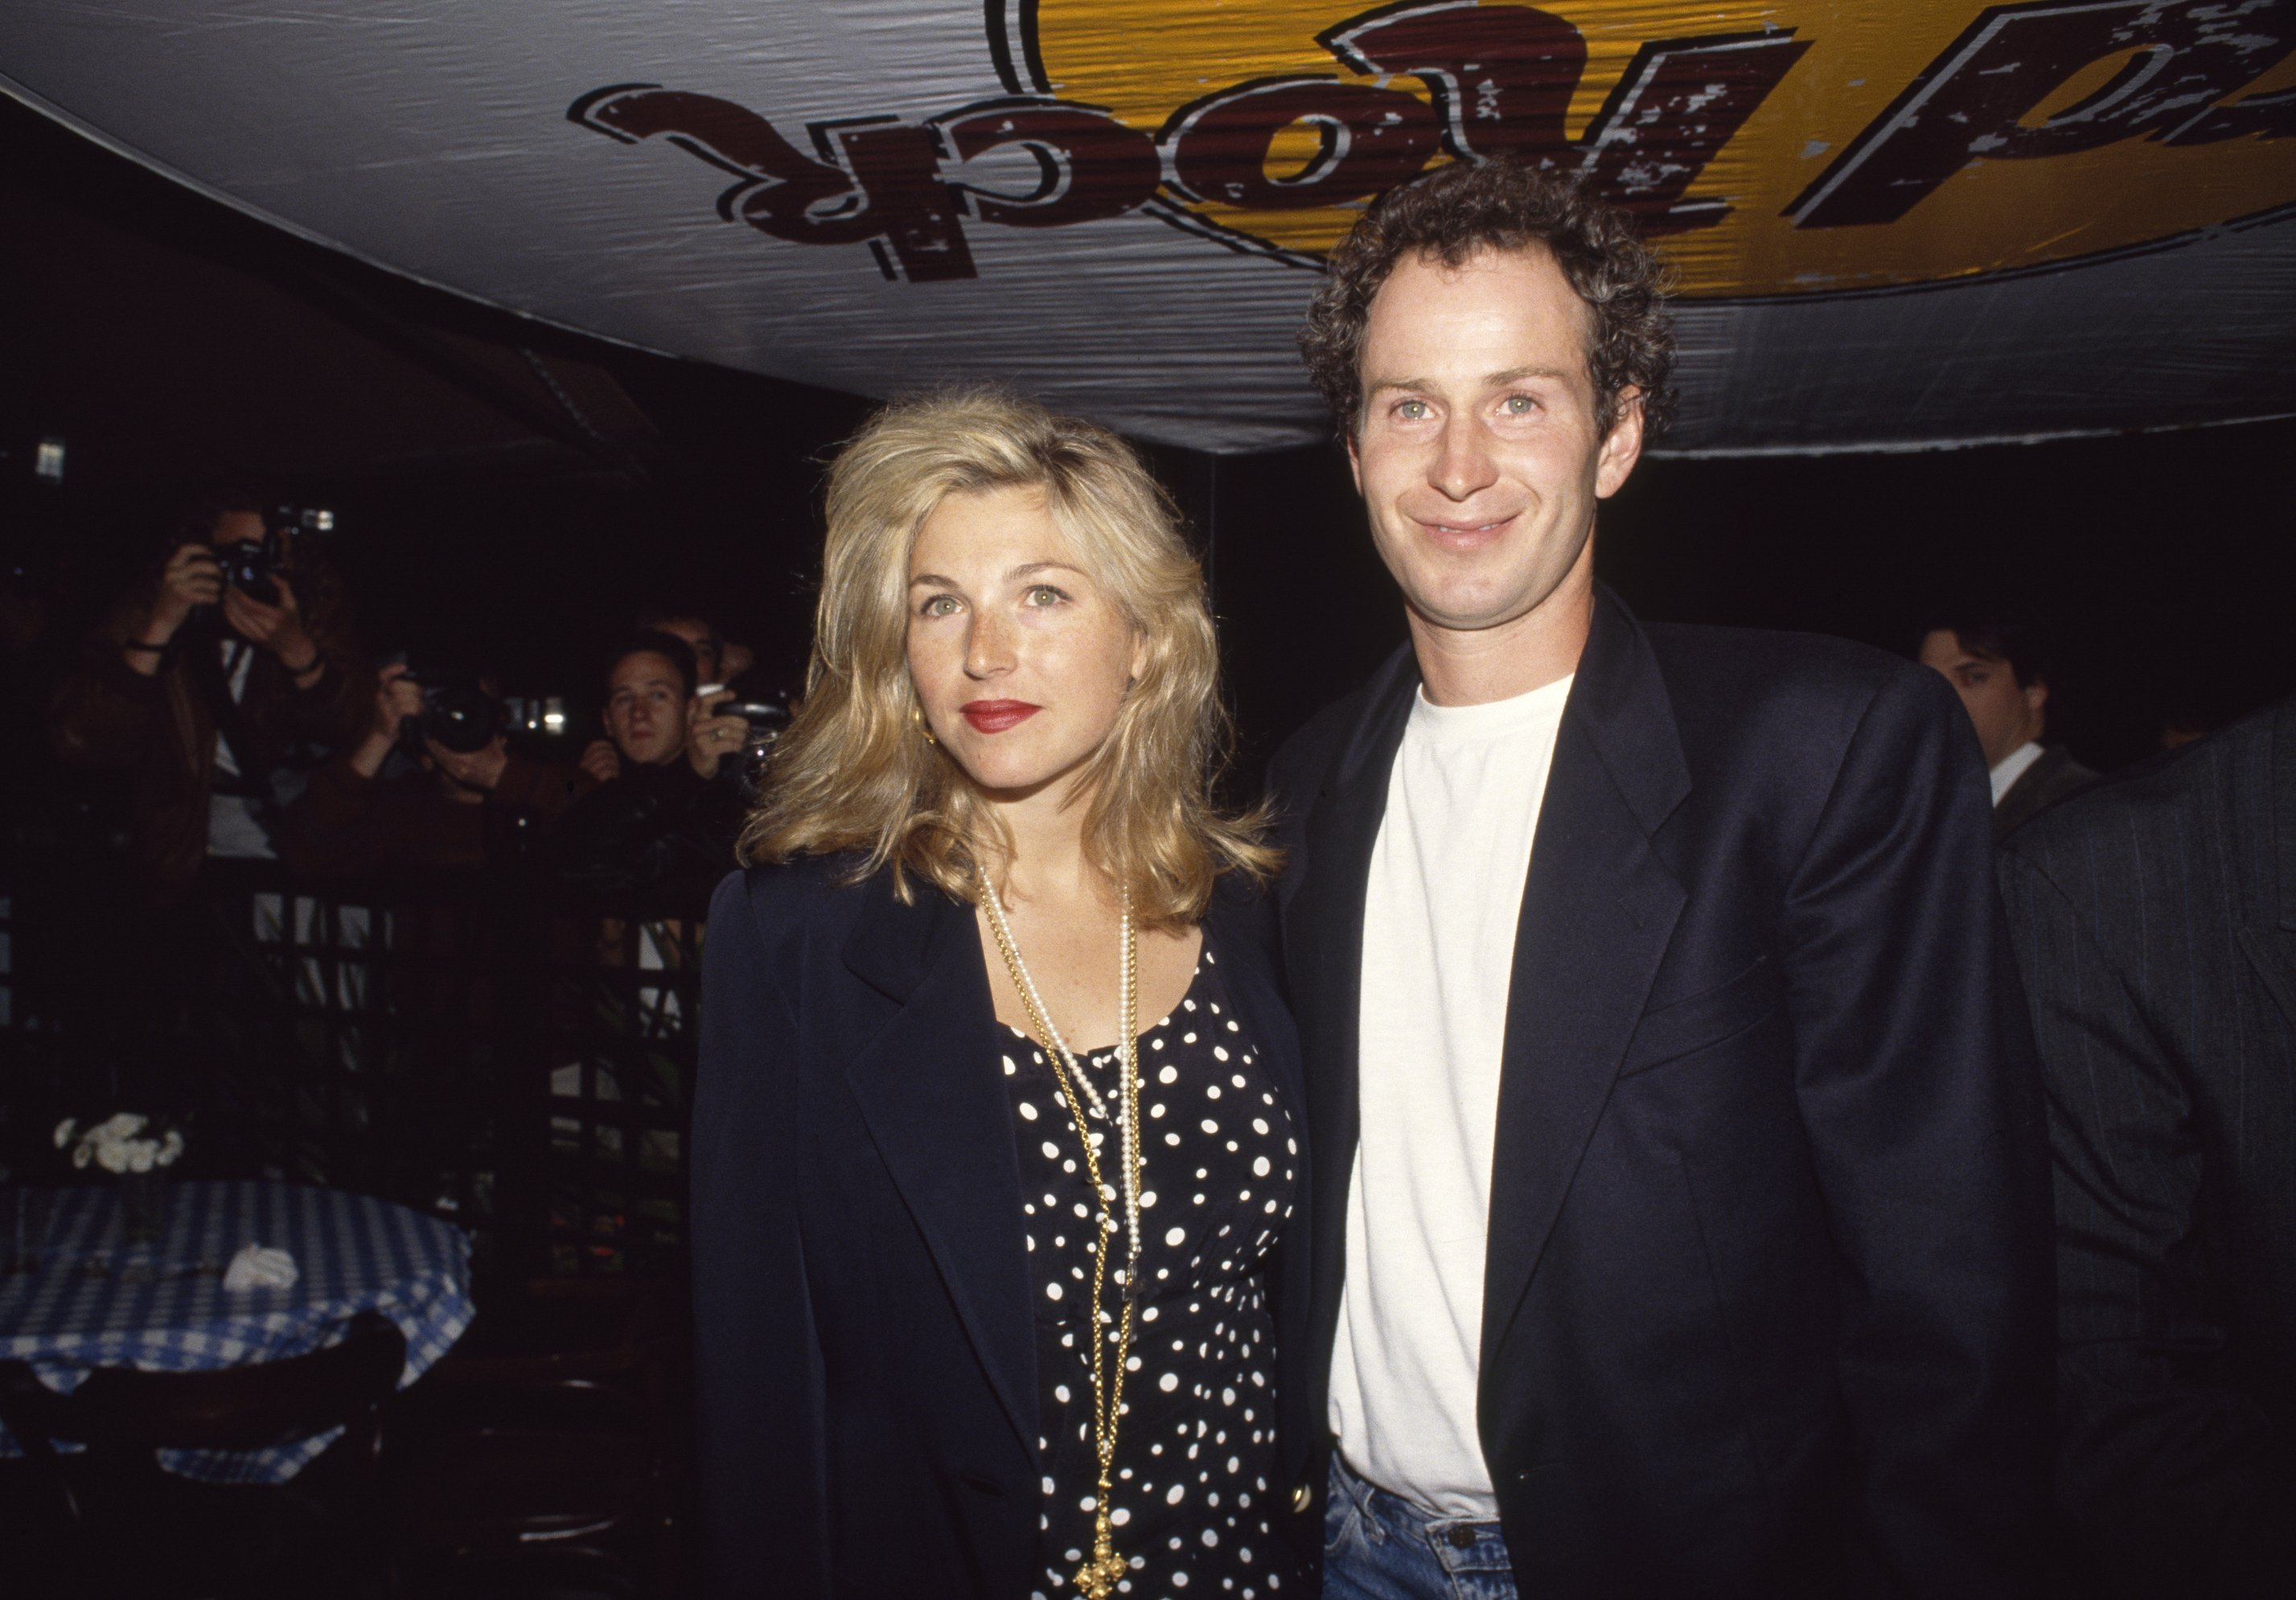 John McEnroe and Tatum O'Neal during the US Open Players' Party at the Hard Rock Cafe in New York, USA circa September 1990. | Photo by Professional Sport/Popperfoto via Getty Images